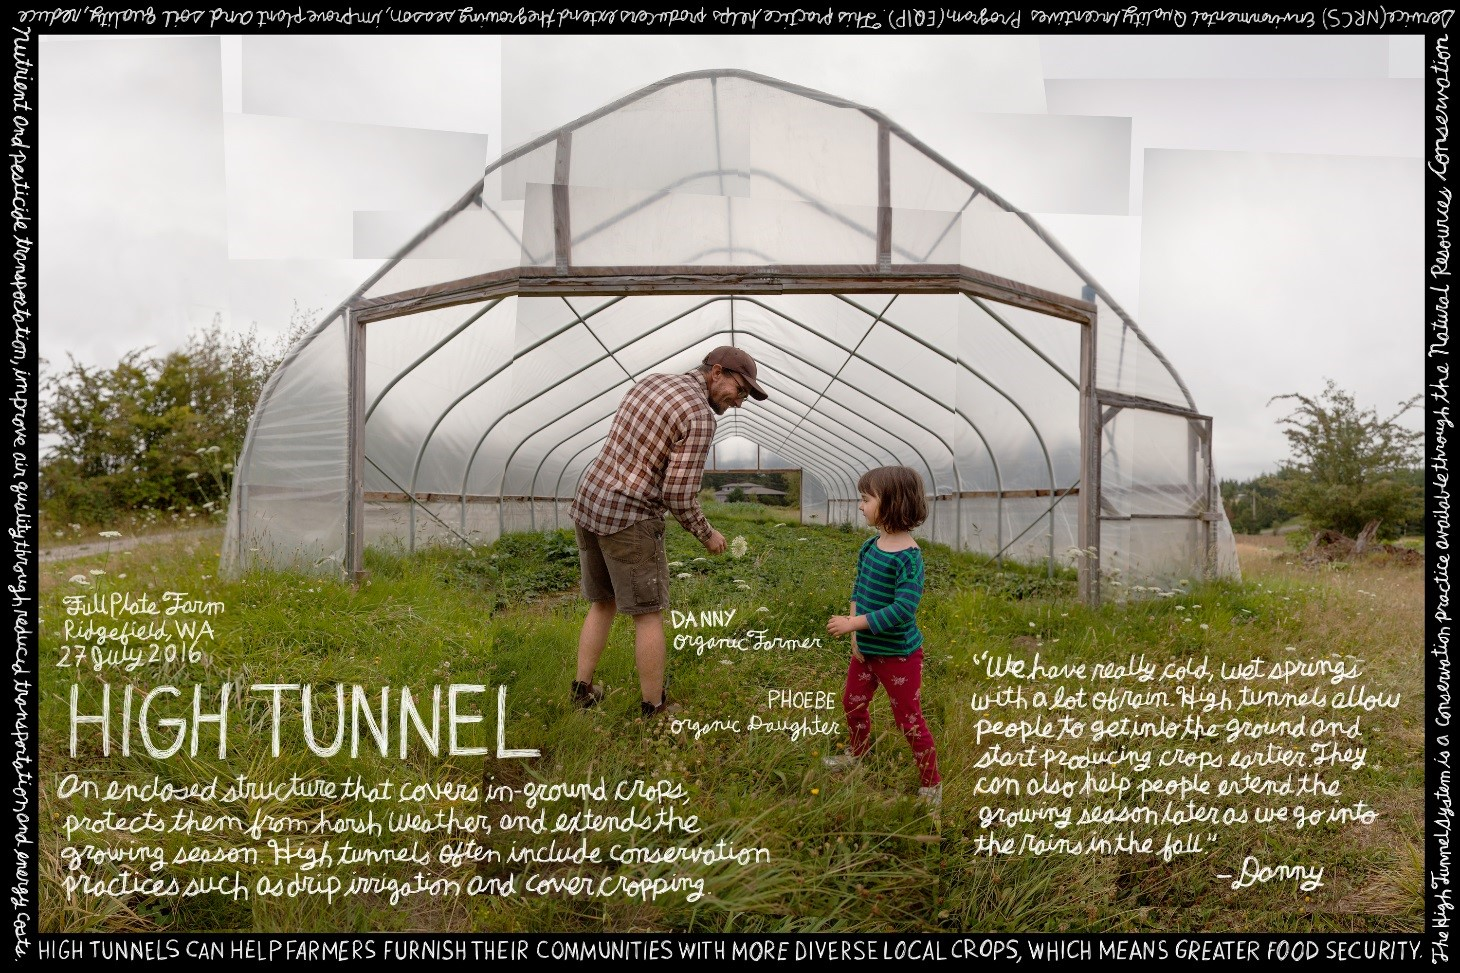 High Tunnell image with man and little girl